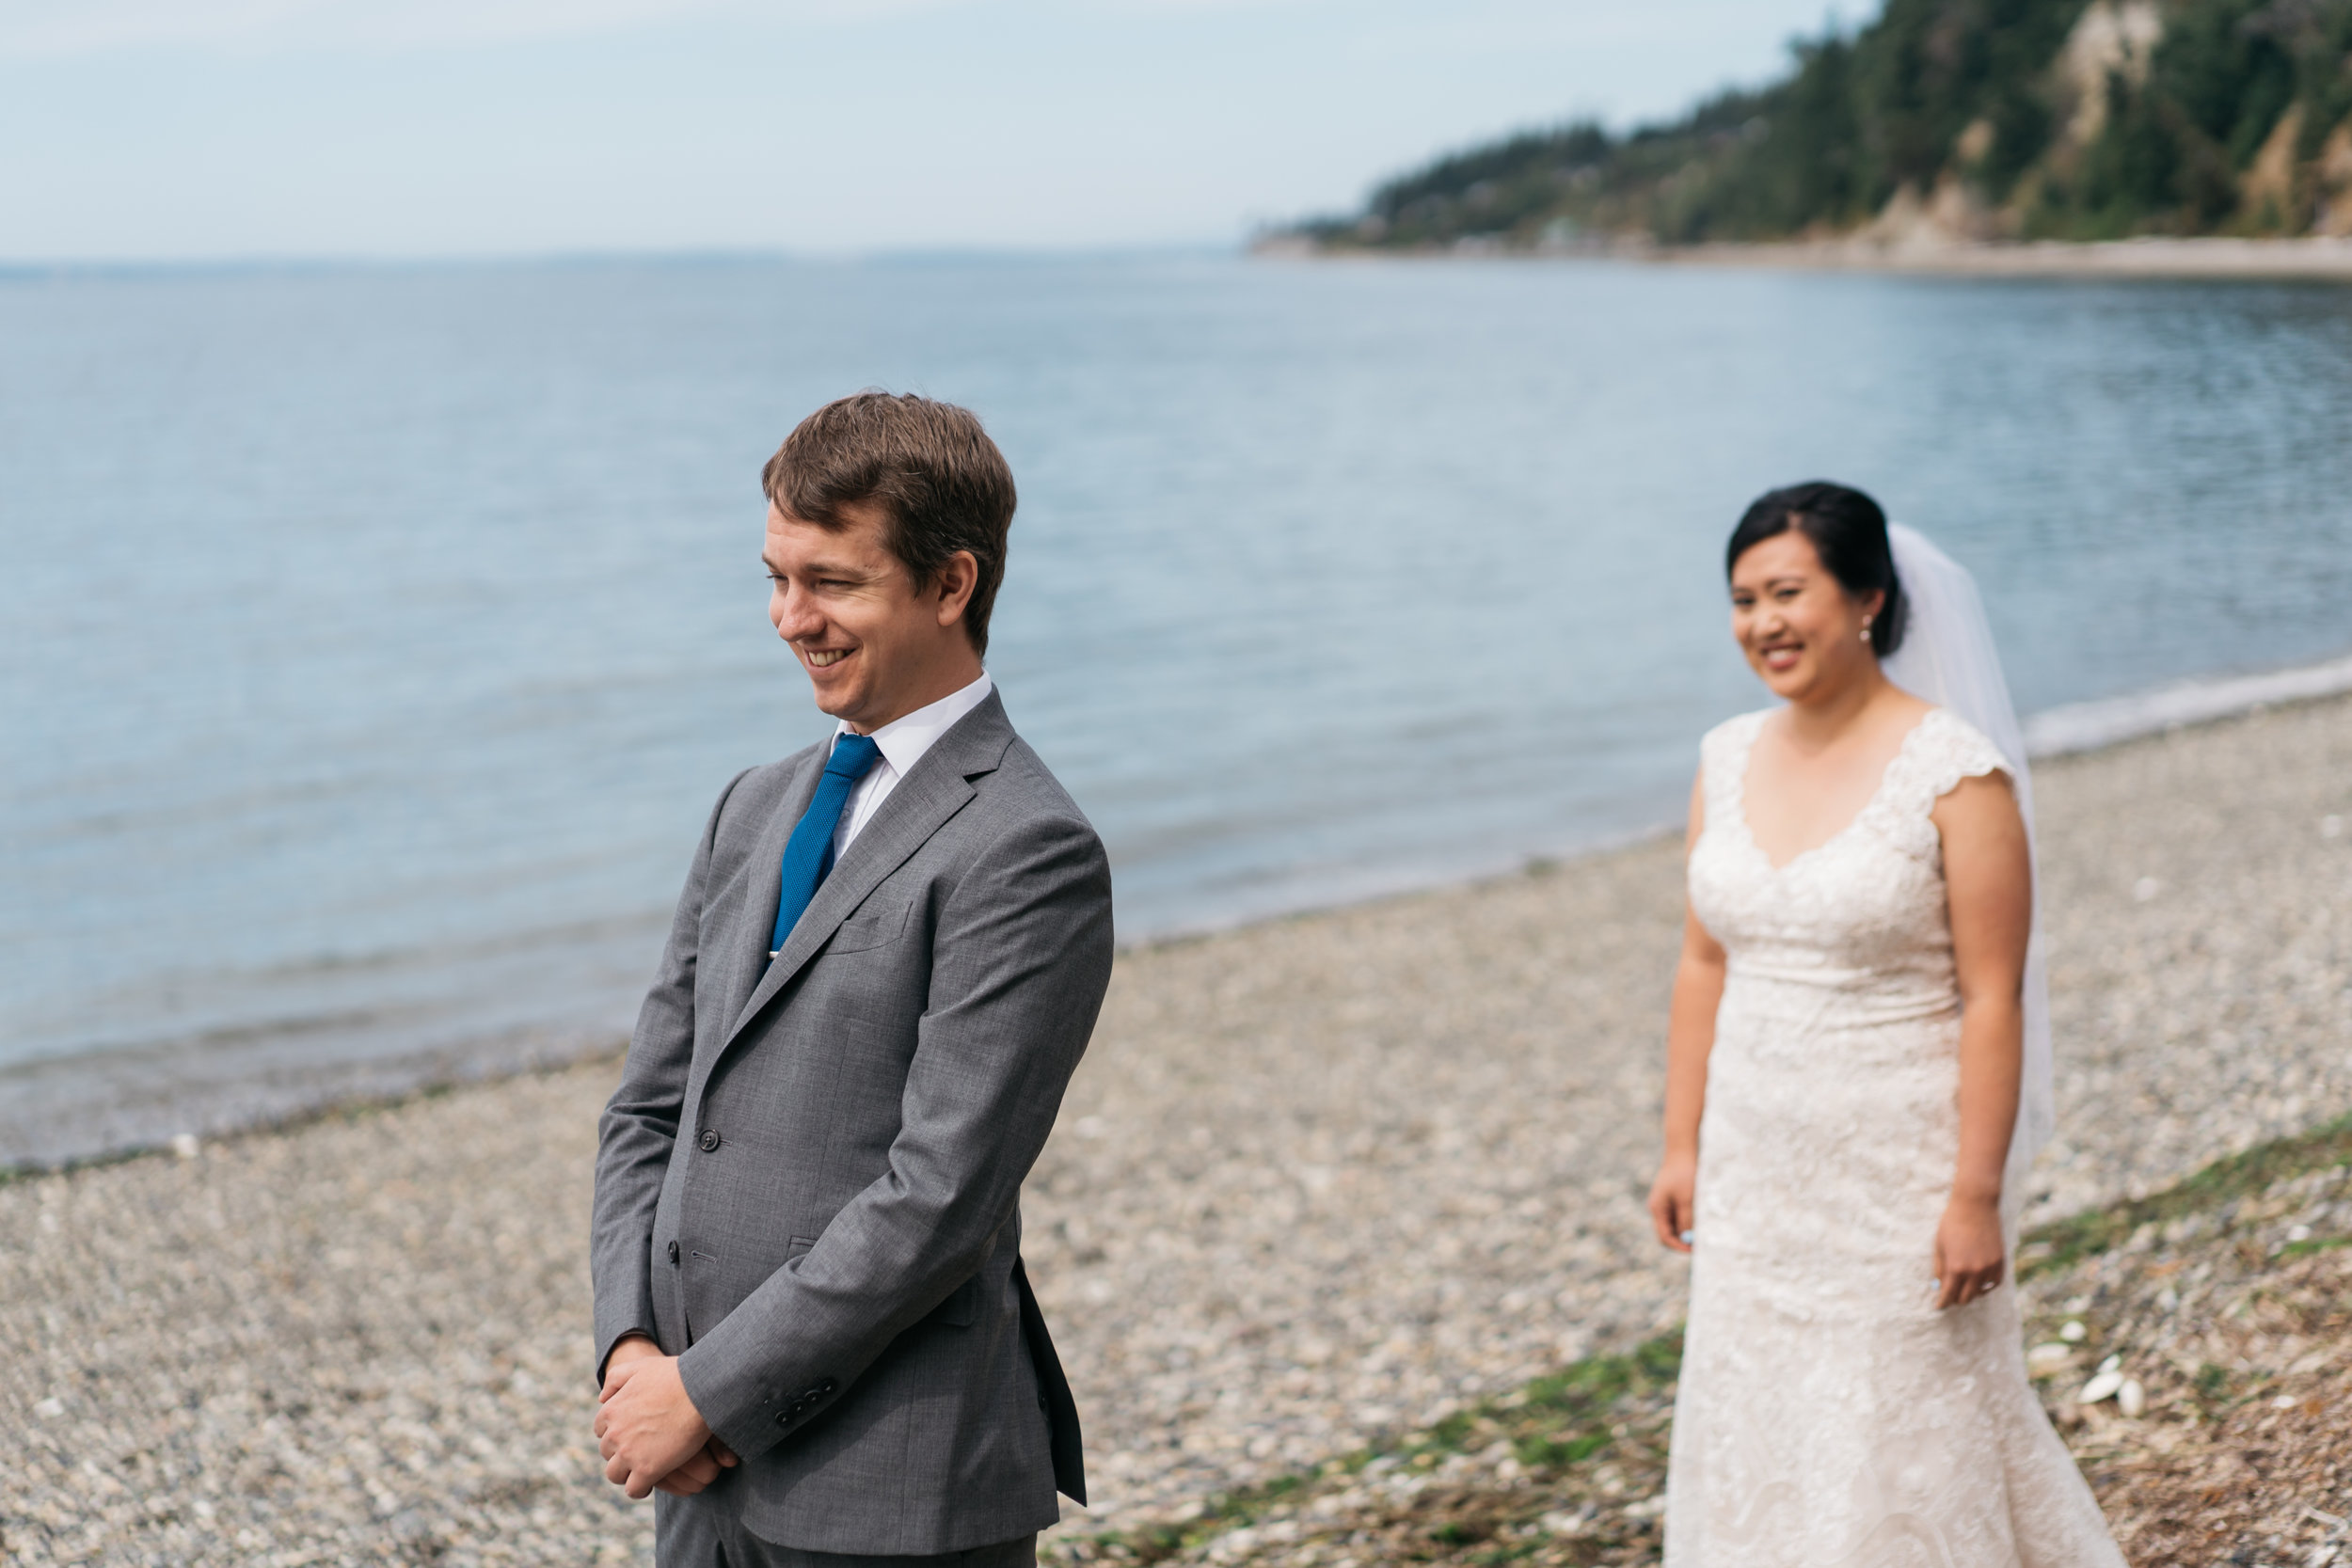 Camano-Island-Cama-Beach-Wedding (10).jpg